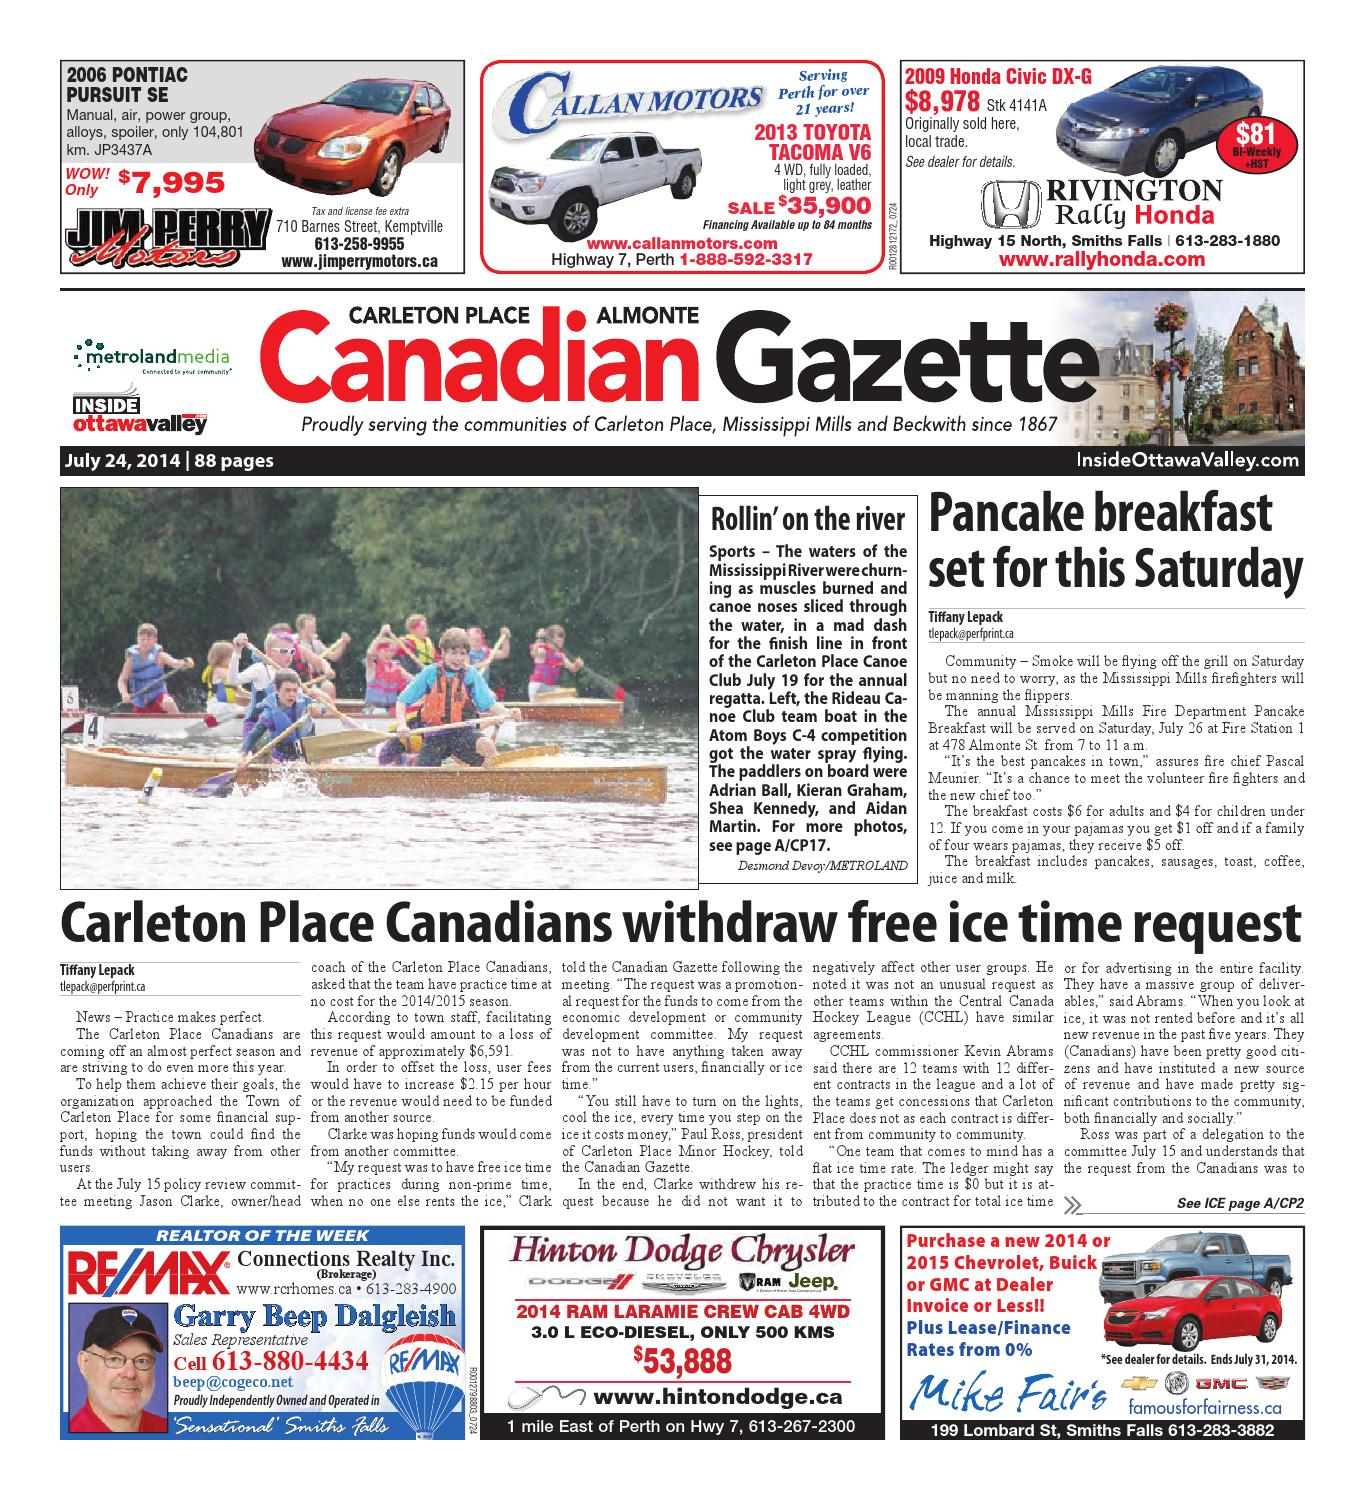 Almontecarletonplace072414 by metroland east almonte carleton almontecarletonplace072414 by metroland east almonte carleton place canadian gazette issuu fandeluxe Images